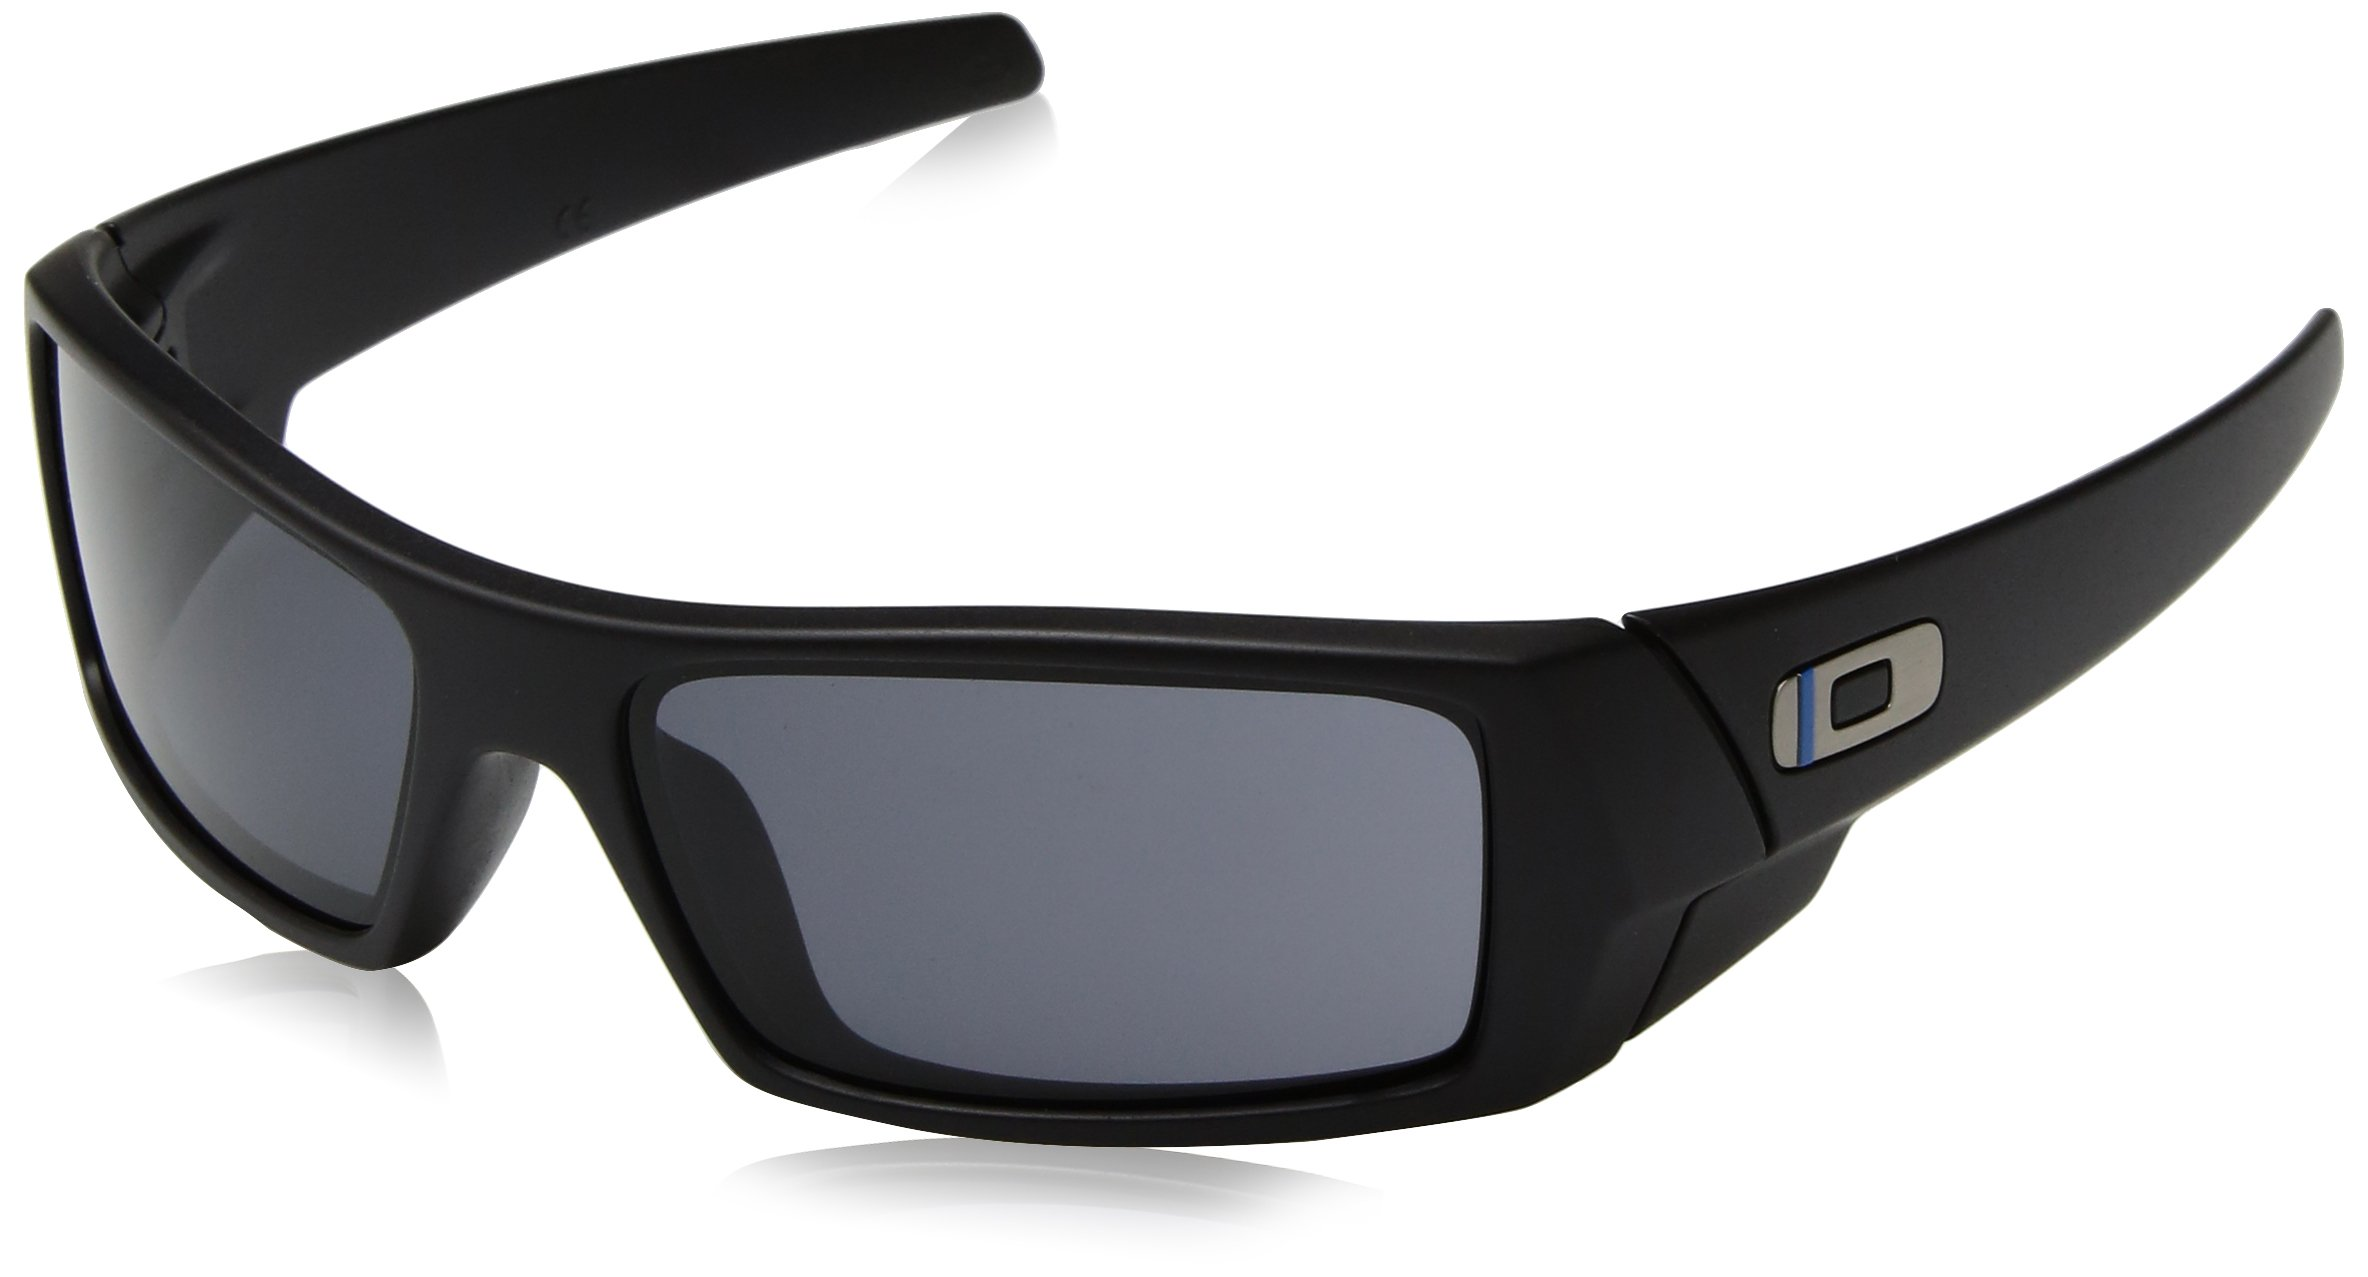 27fb873a7c1 Amazon.com  Oakley Men s OO9014 Gascan Sunglasses  Clothing